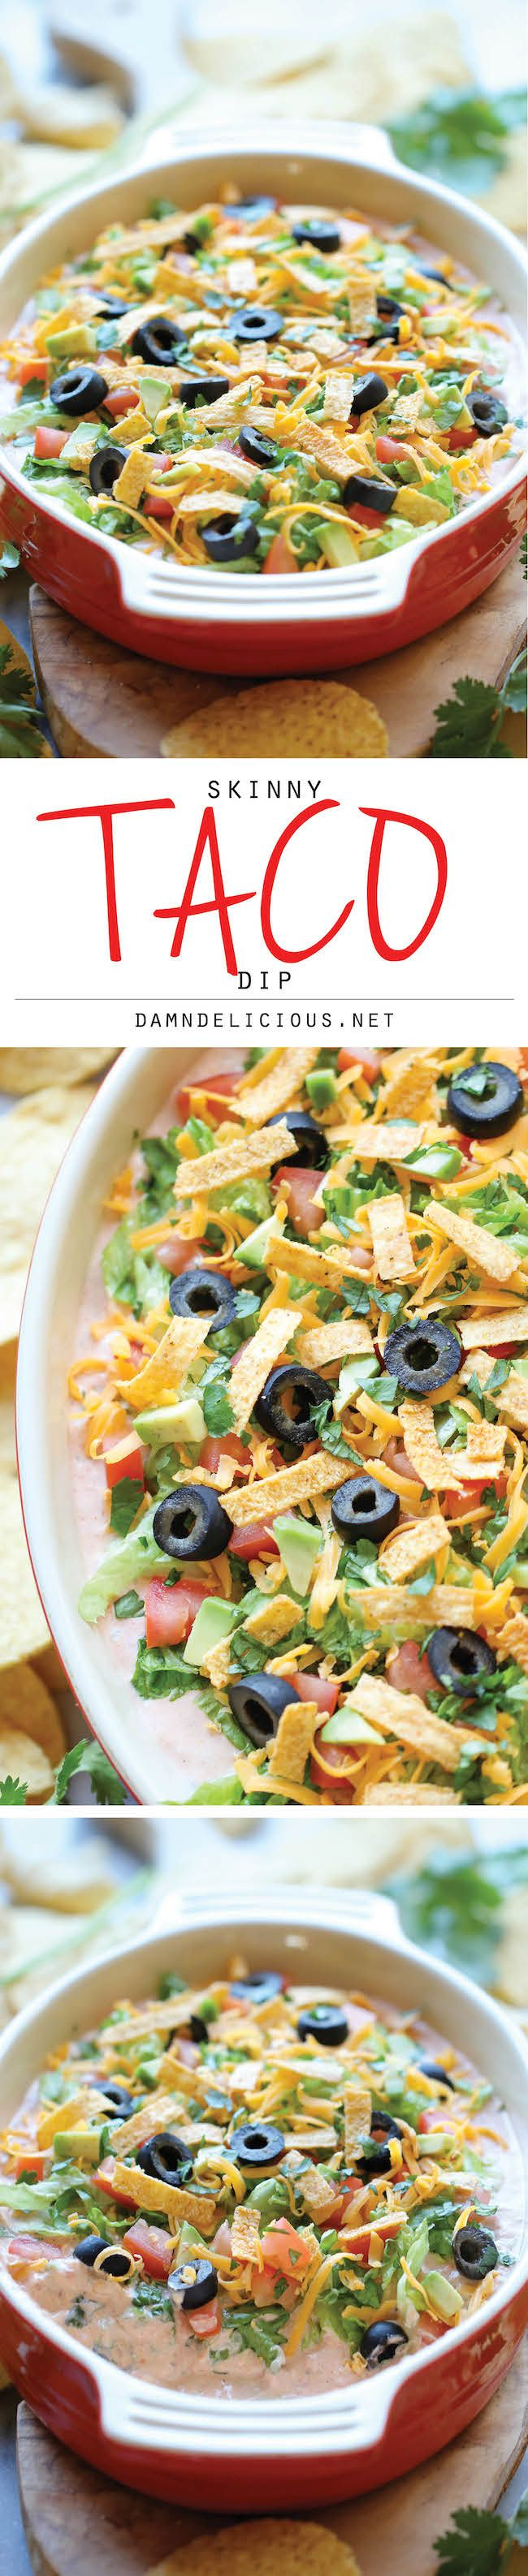 1000+ images about Appetizers on Pinterest | Skinny taco ...